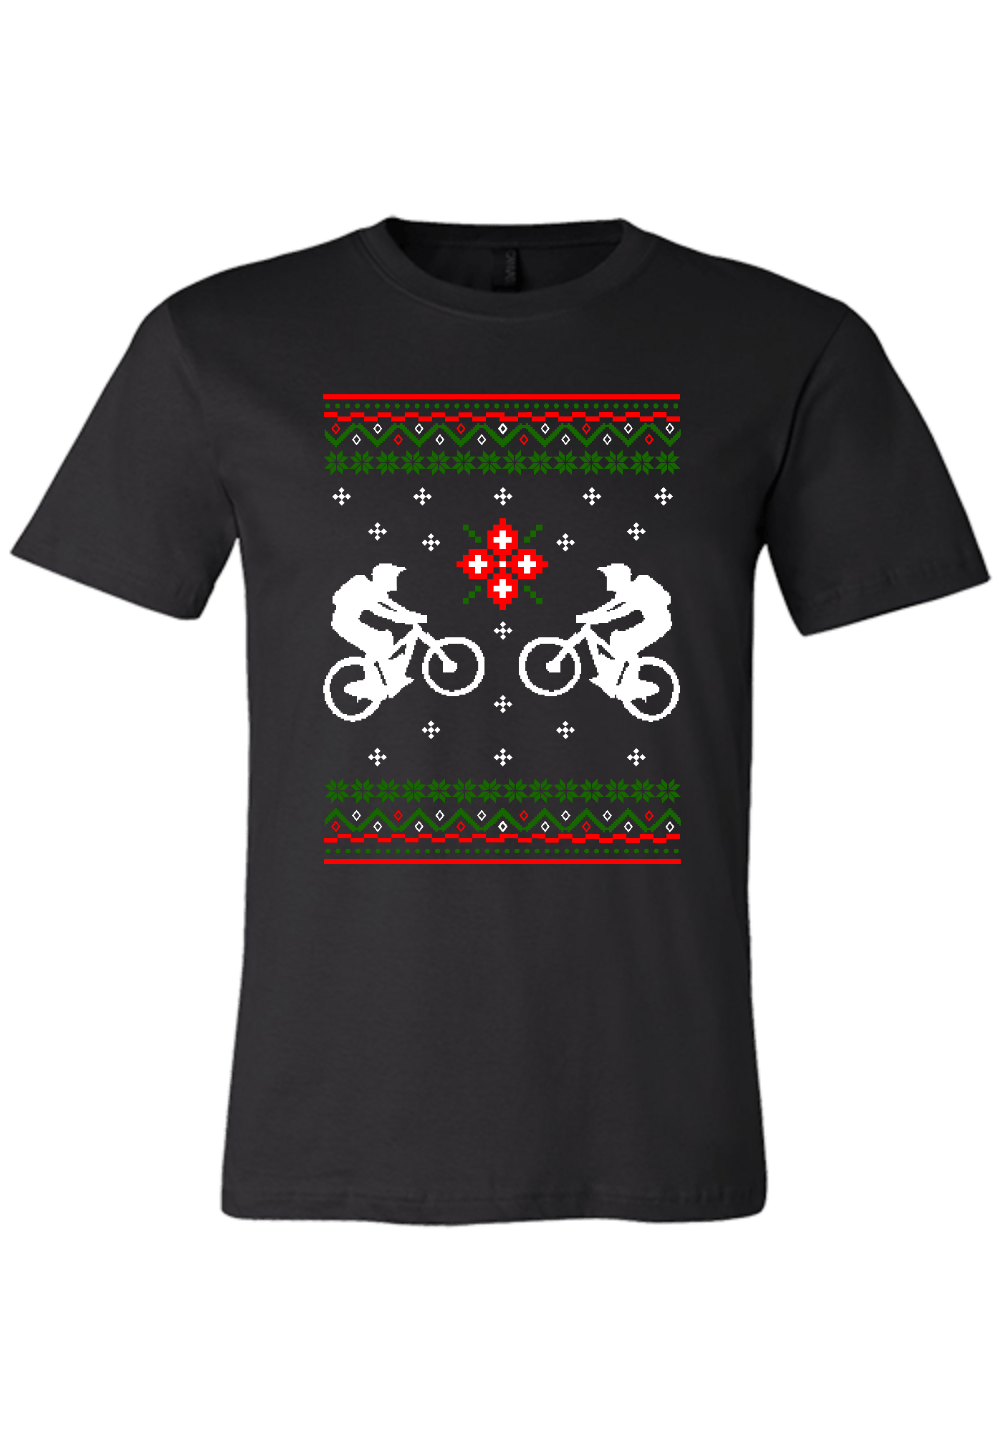 Ugly Sweater Bicycle Cross Christmas Shirt